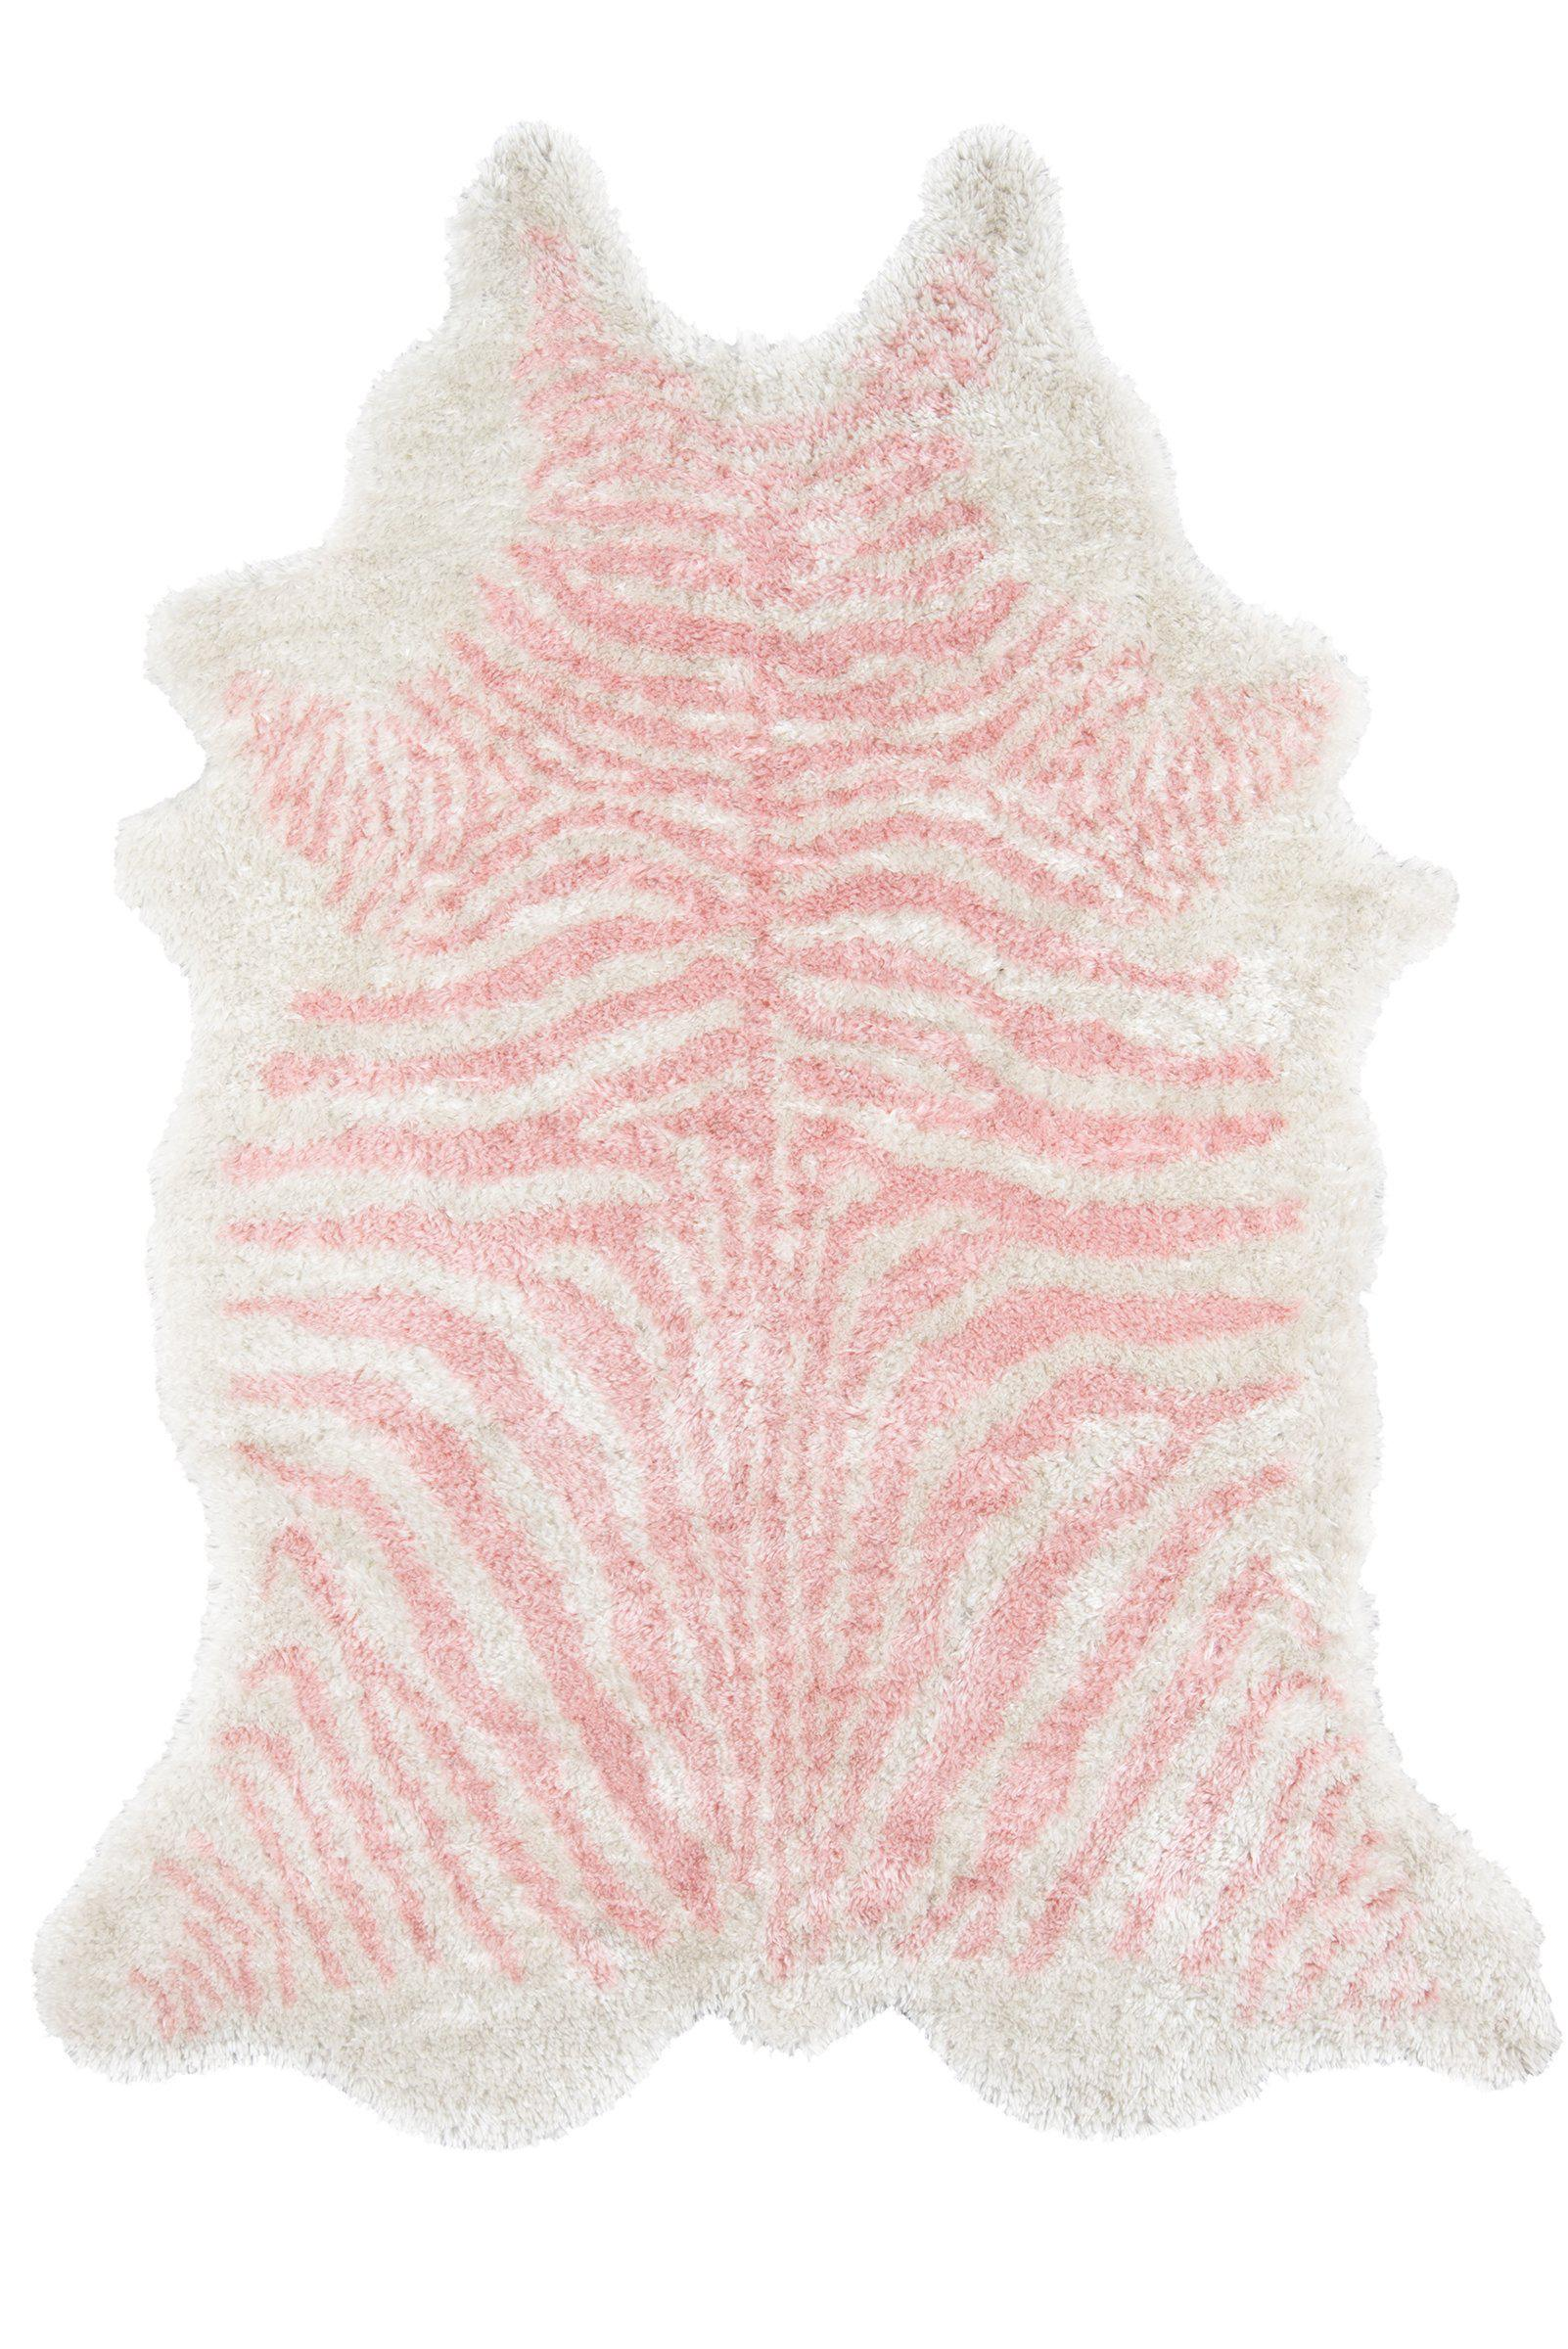 "Novogratz by Momeni Kalahari KAL-1 Domesticated Pink Area Rug-Area Rug-Momeni-3'6"" X 5'6""-The Rug Truck"